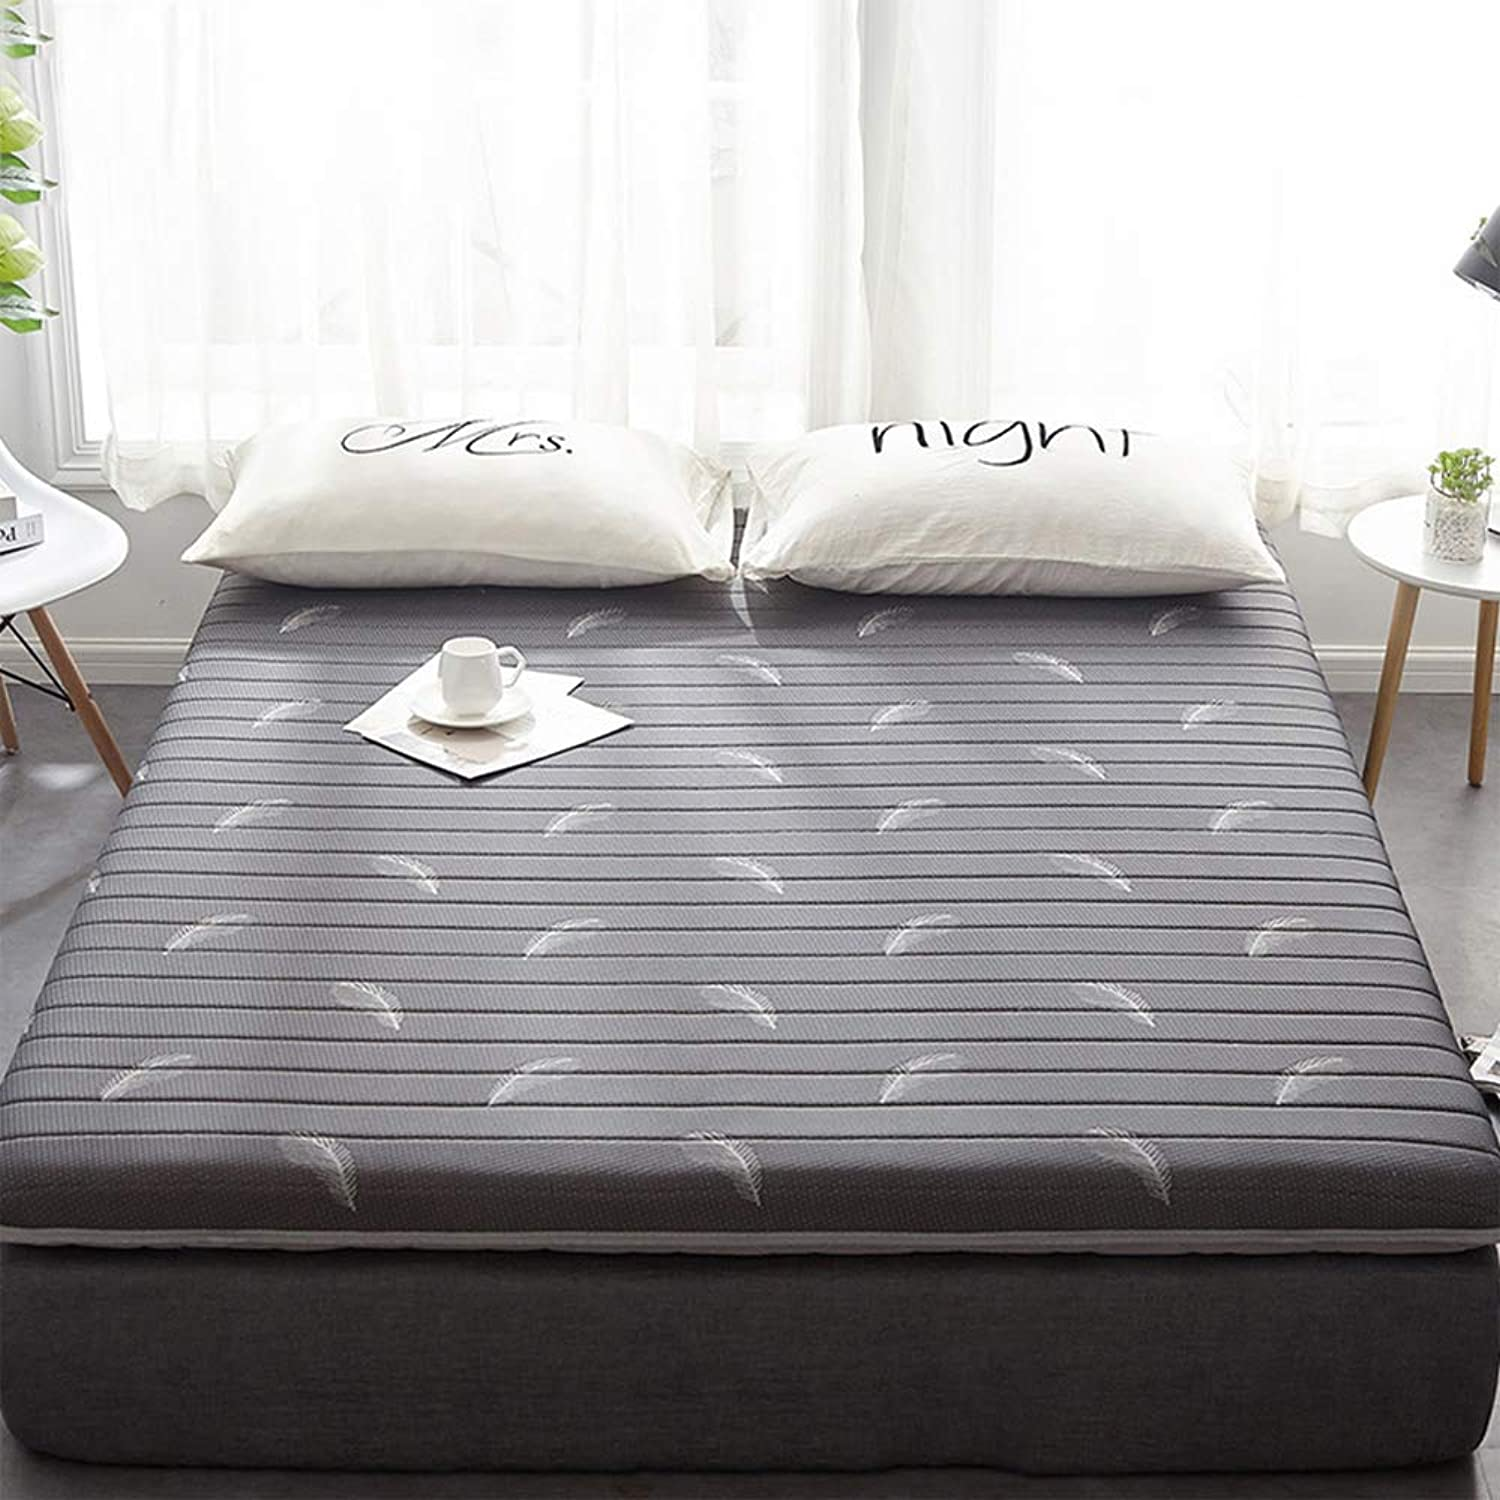 Memory Foam Mattress Ultra-Soft, Japanese Tatami Mattress Sided Available Breathable Sleeping Pad for Hotel Bedding-d 120x200x6cm(47x79x2inch)